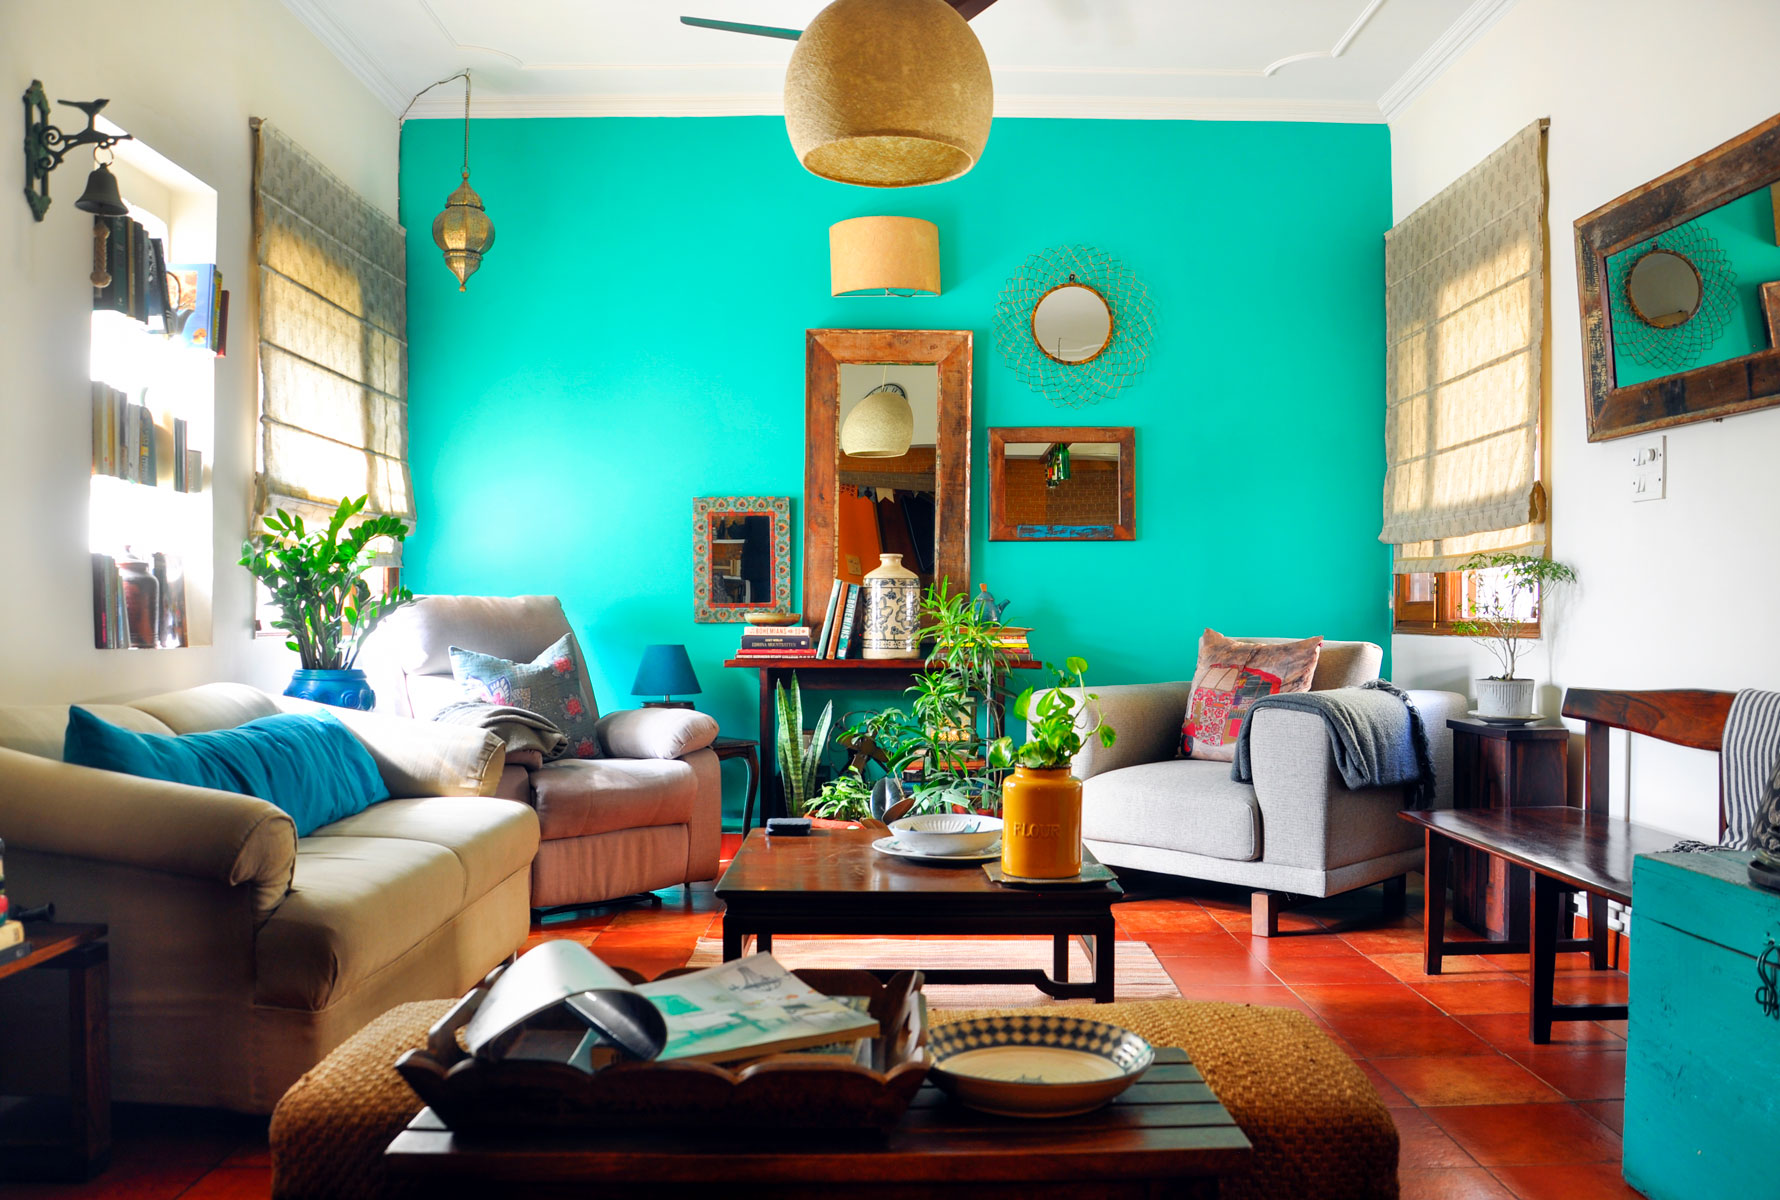 How To Decorate Your Small House Part 2 The Smart Way The Urban Guide